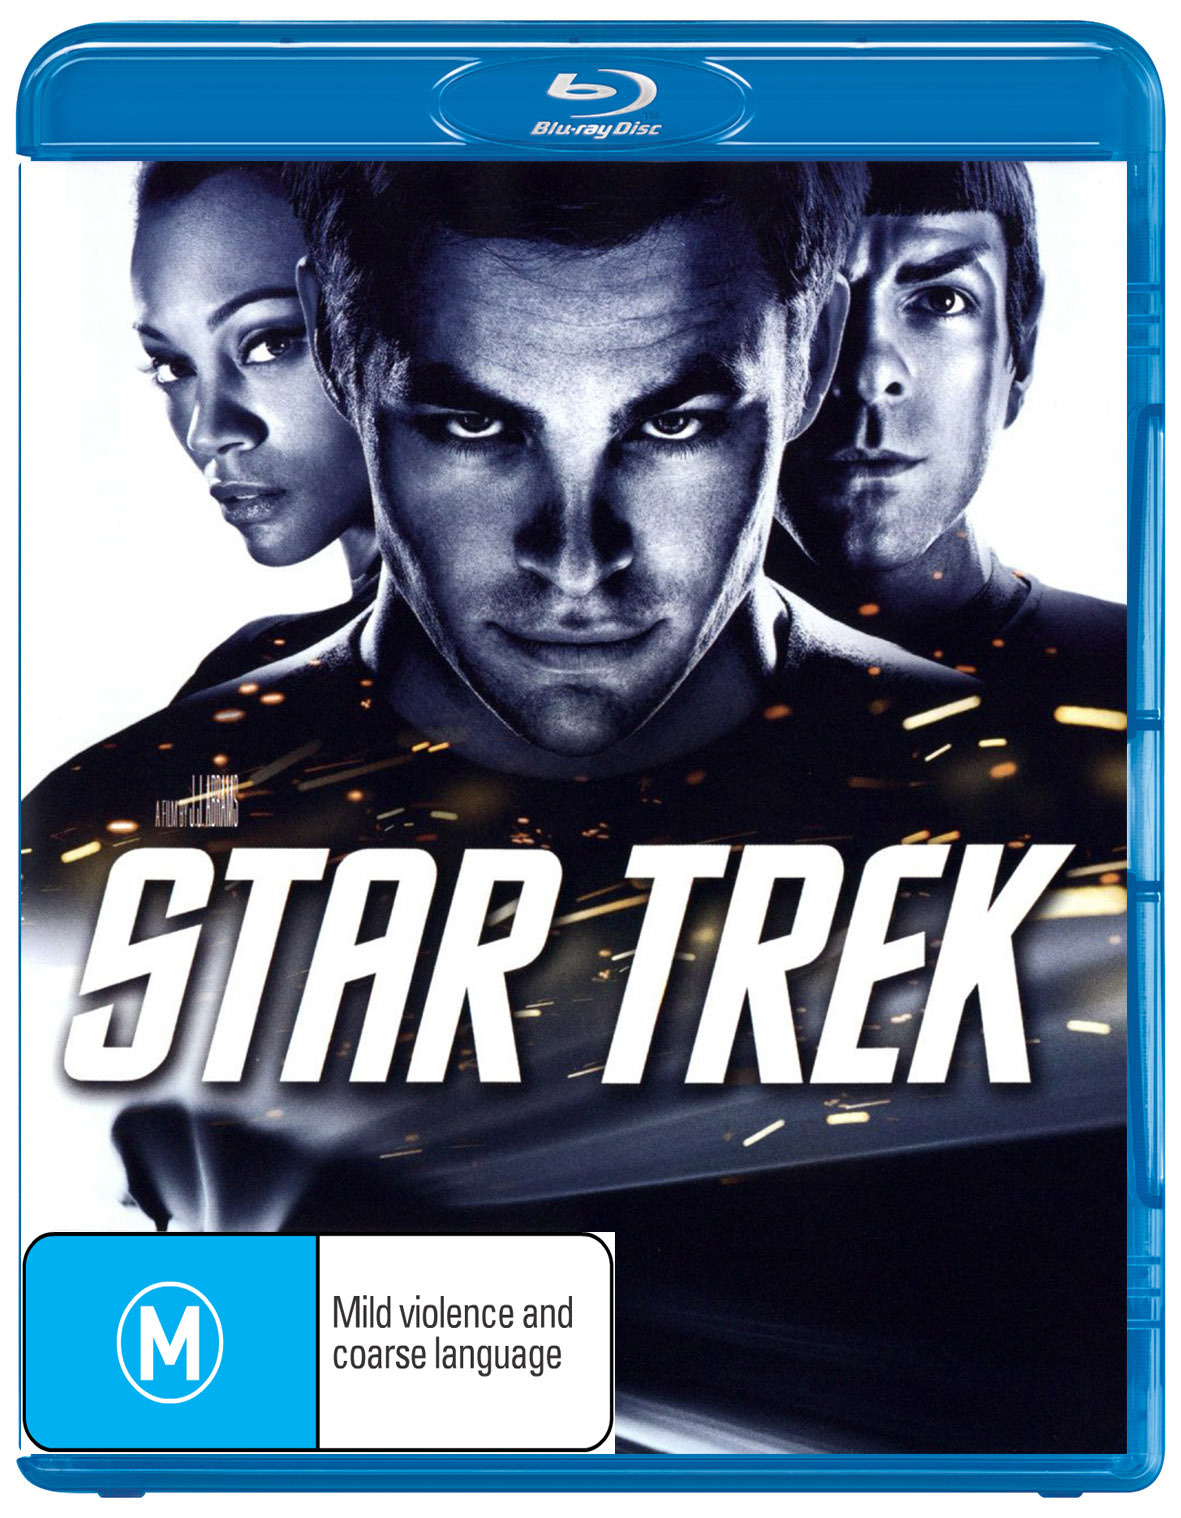 Star Trek XI on Blu-ray image